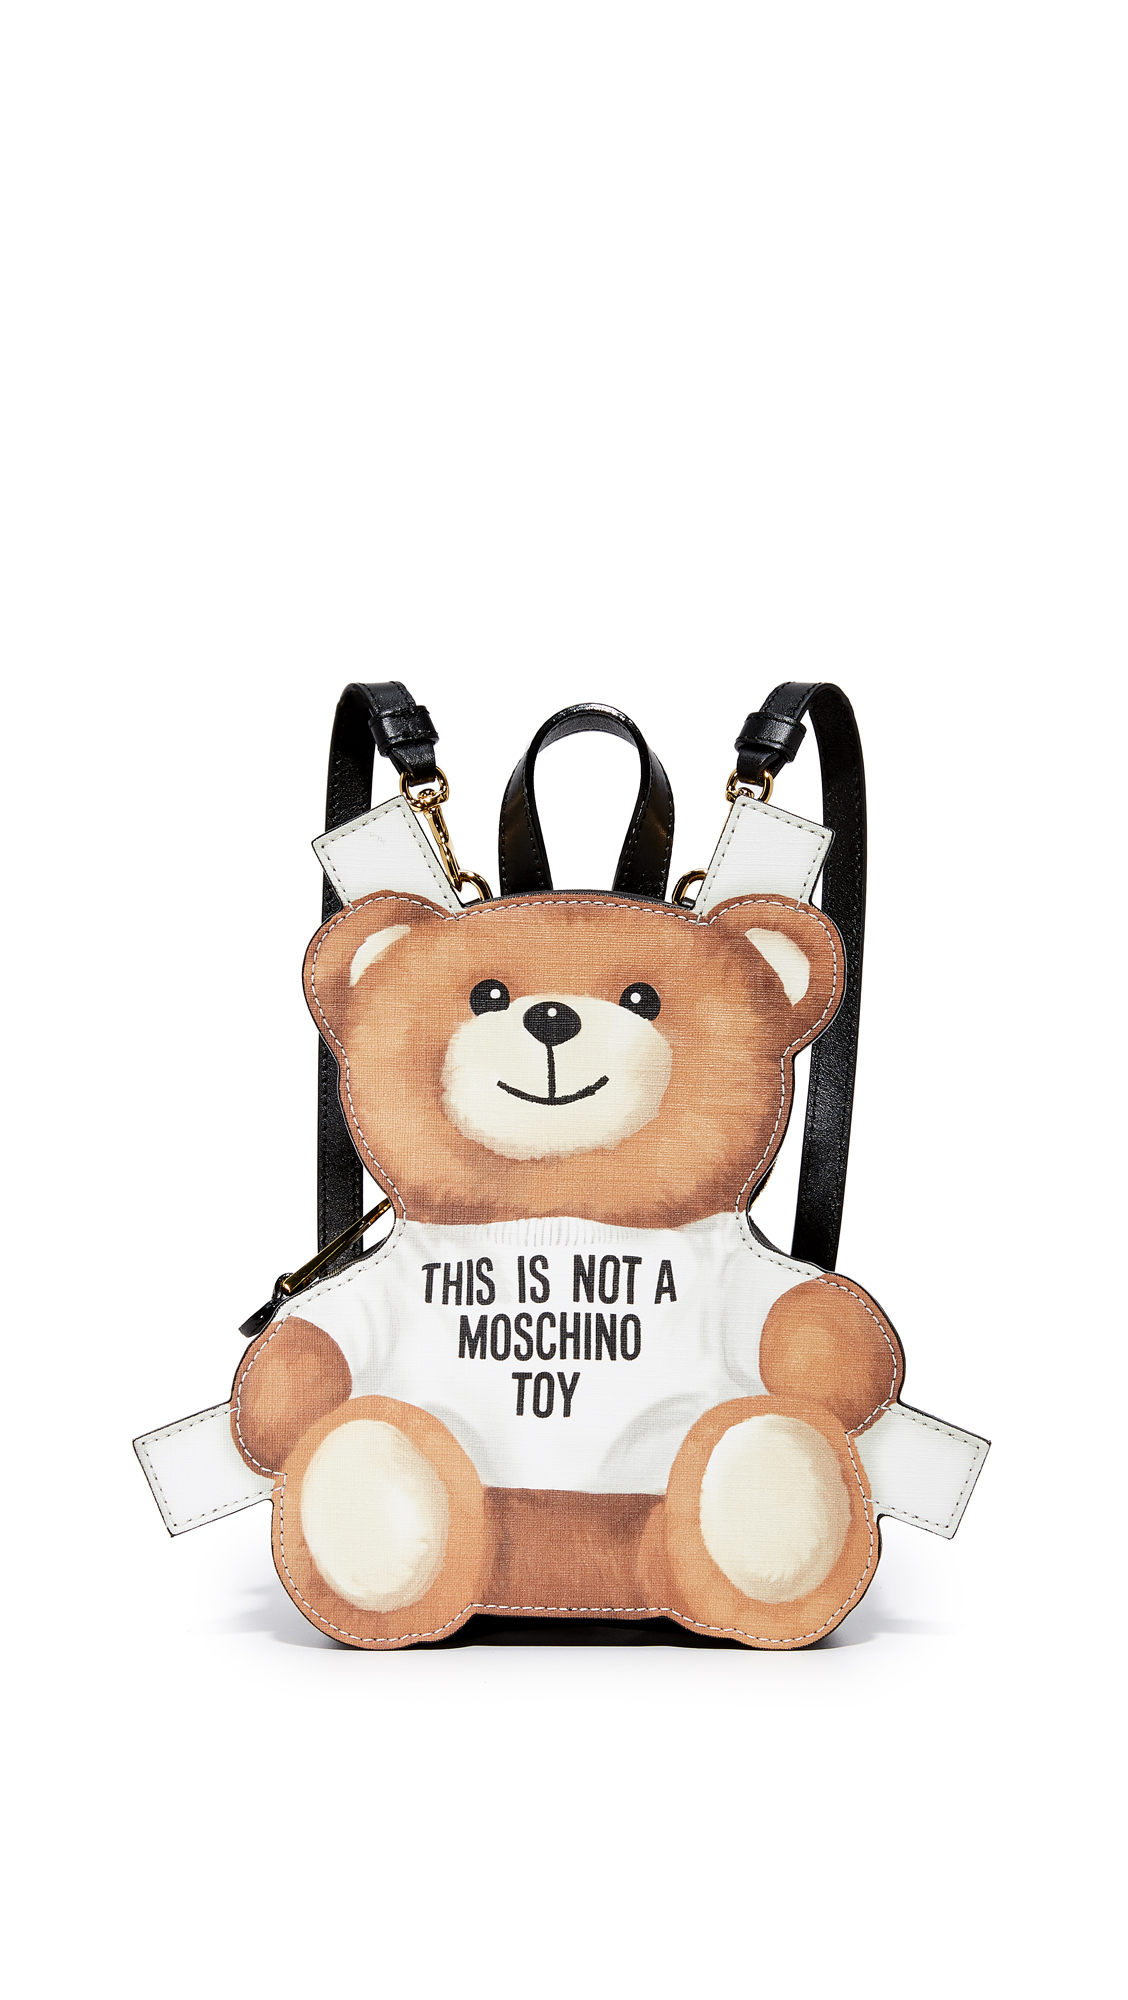 This petite, teddy bear shaped Moschino backpack is crafted in rich saffiano leather. The top zip opens to a lined interior compartment. Locker loop and optional, adjustable shoulder straps. Dust bag included. Fabric: Faux leather. Weight: 16